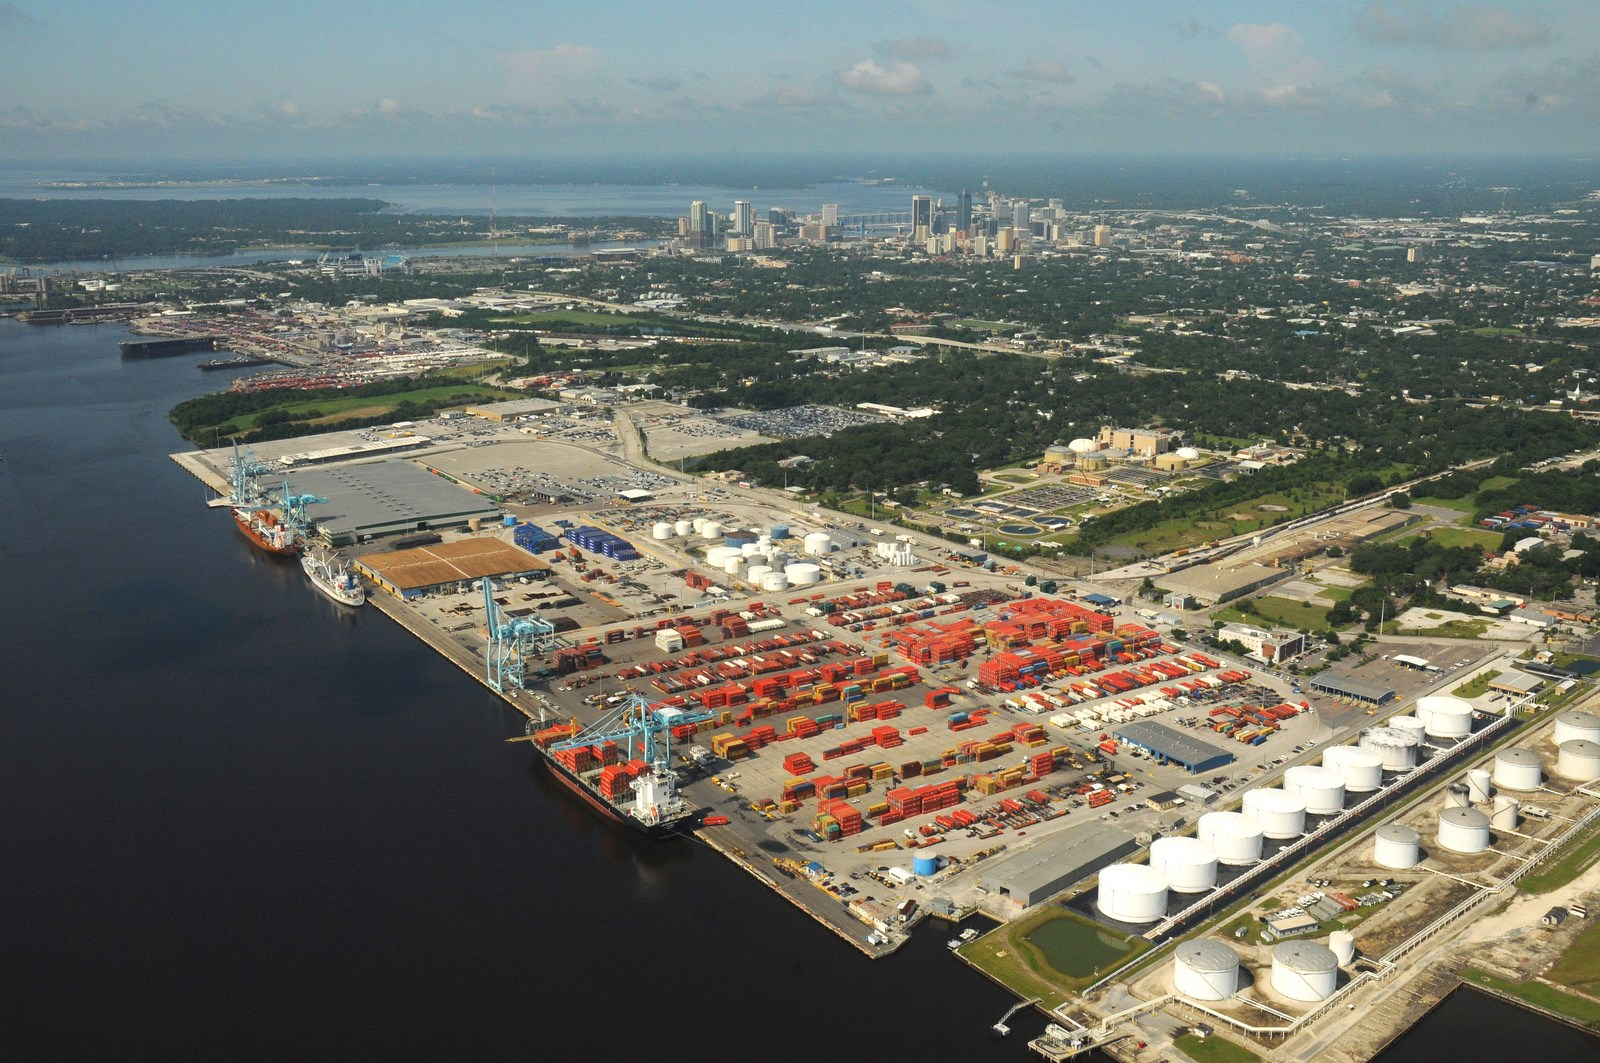 jacksonville port authority The jacksonville port authority (jpa) also known by its brand name, jaxport,  is the independent government agency in jacksonville, florida, that owns and.